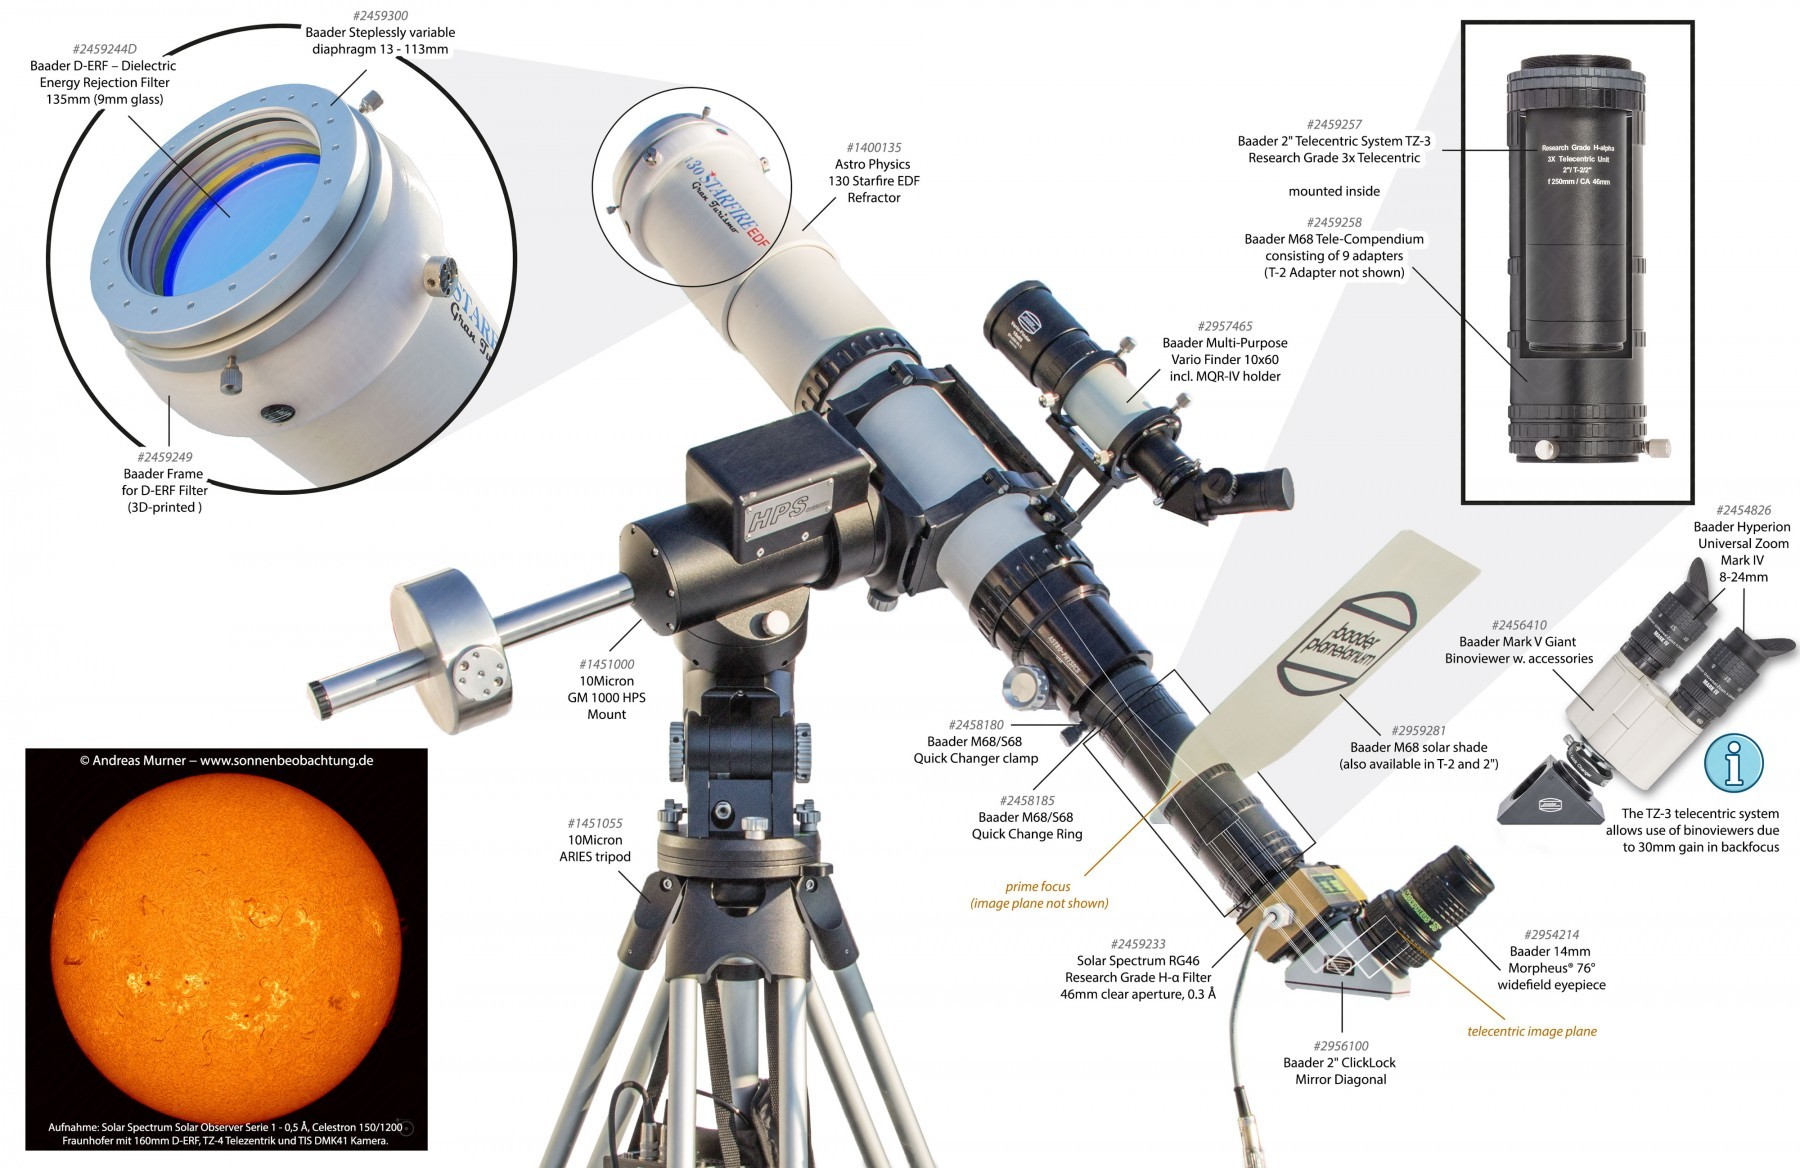 Application Image: Solar Spectrum H-alpha Filter with TZ-3, Telecompendium, D-ERF and additional optional accessories